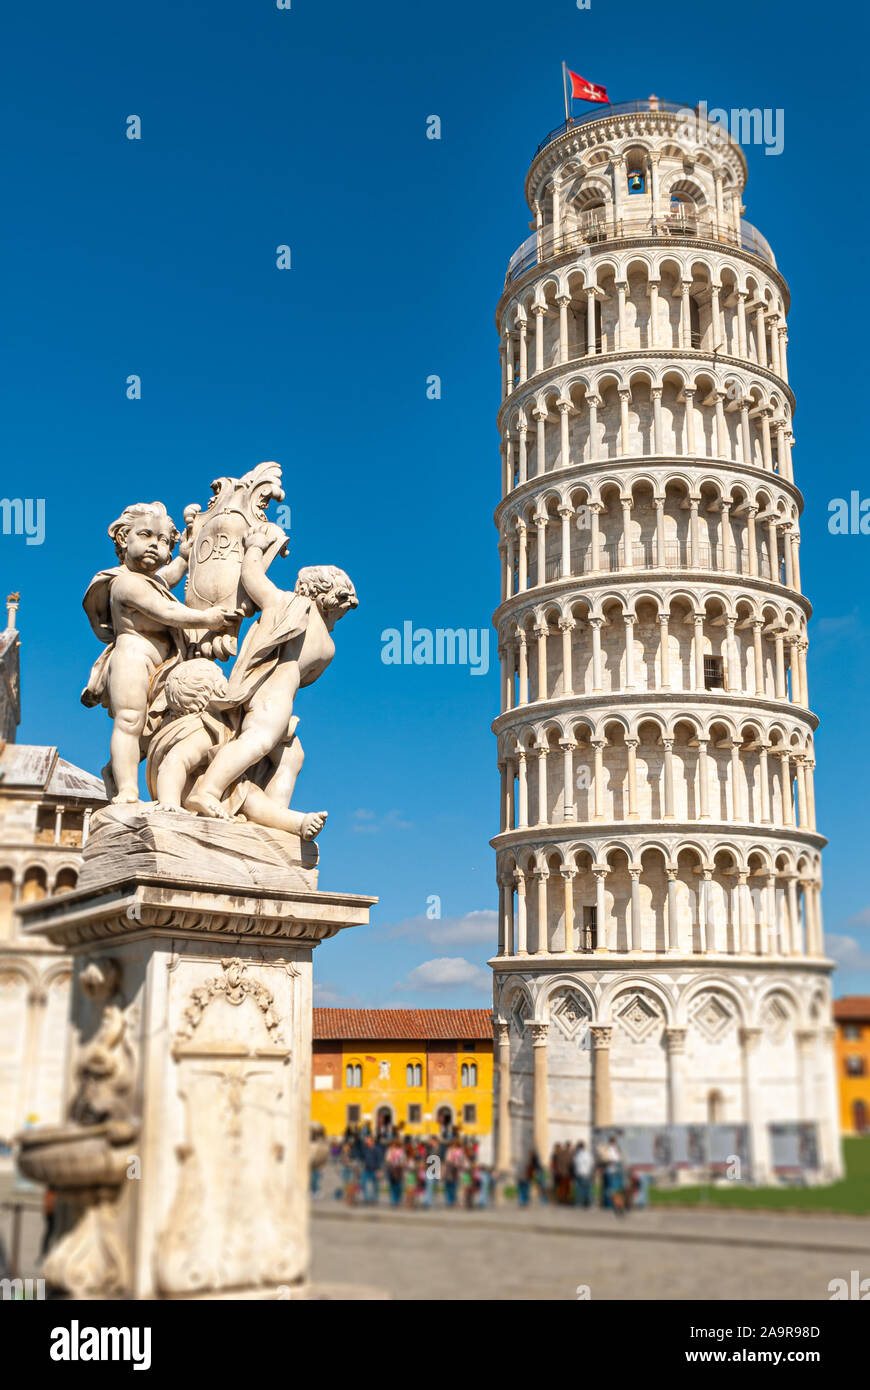 Shot of the leaning tower of Pisa, in the Italian region of Tuscany, taken on a sunny day Stock Photo